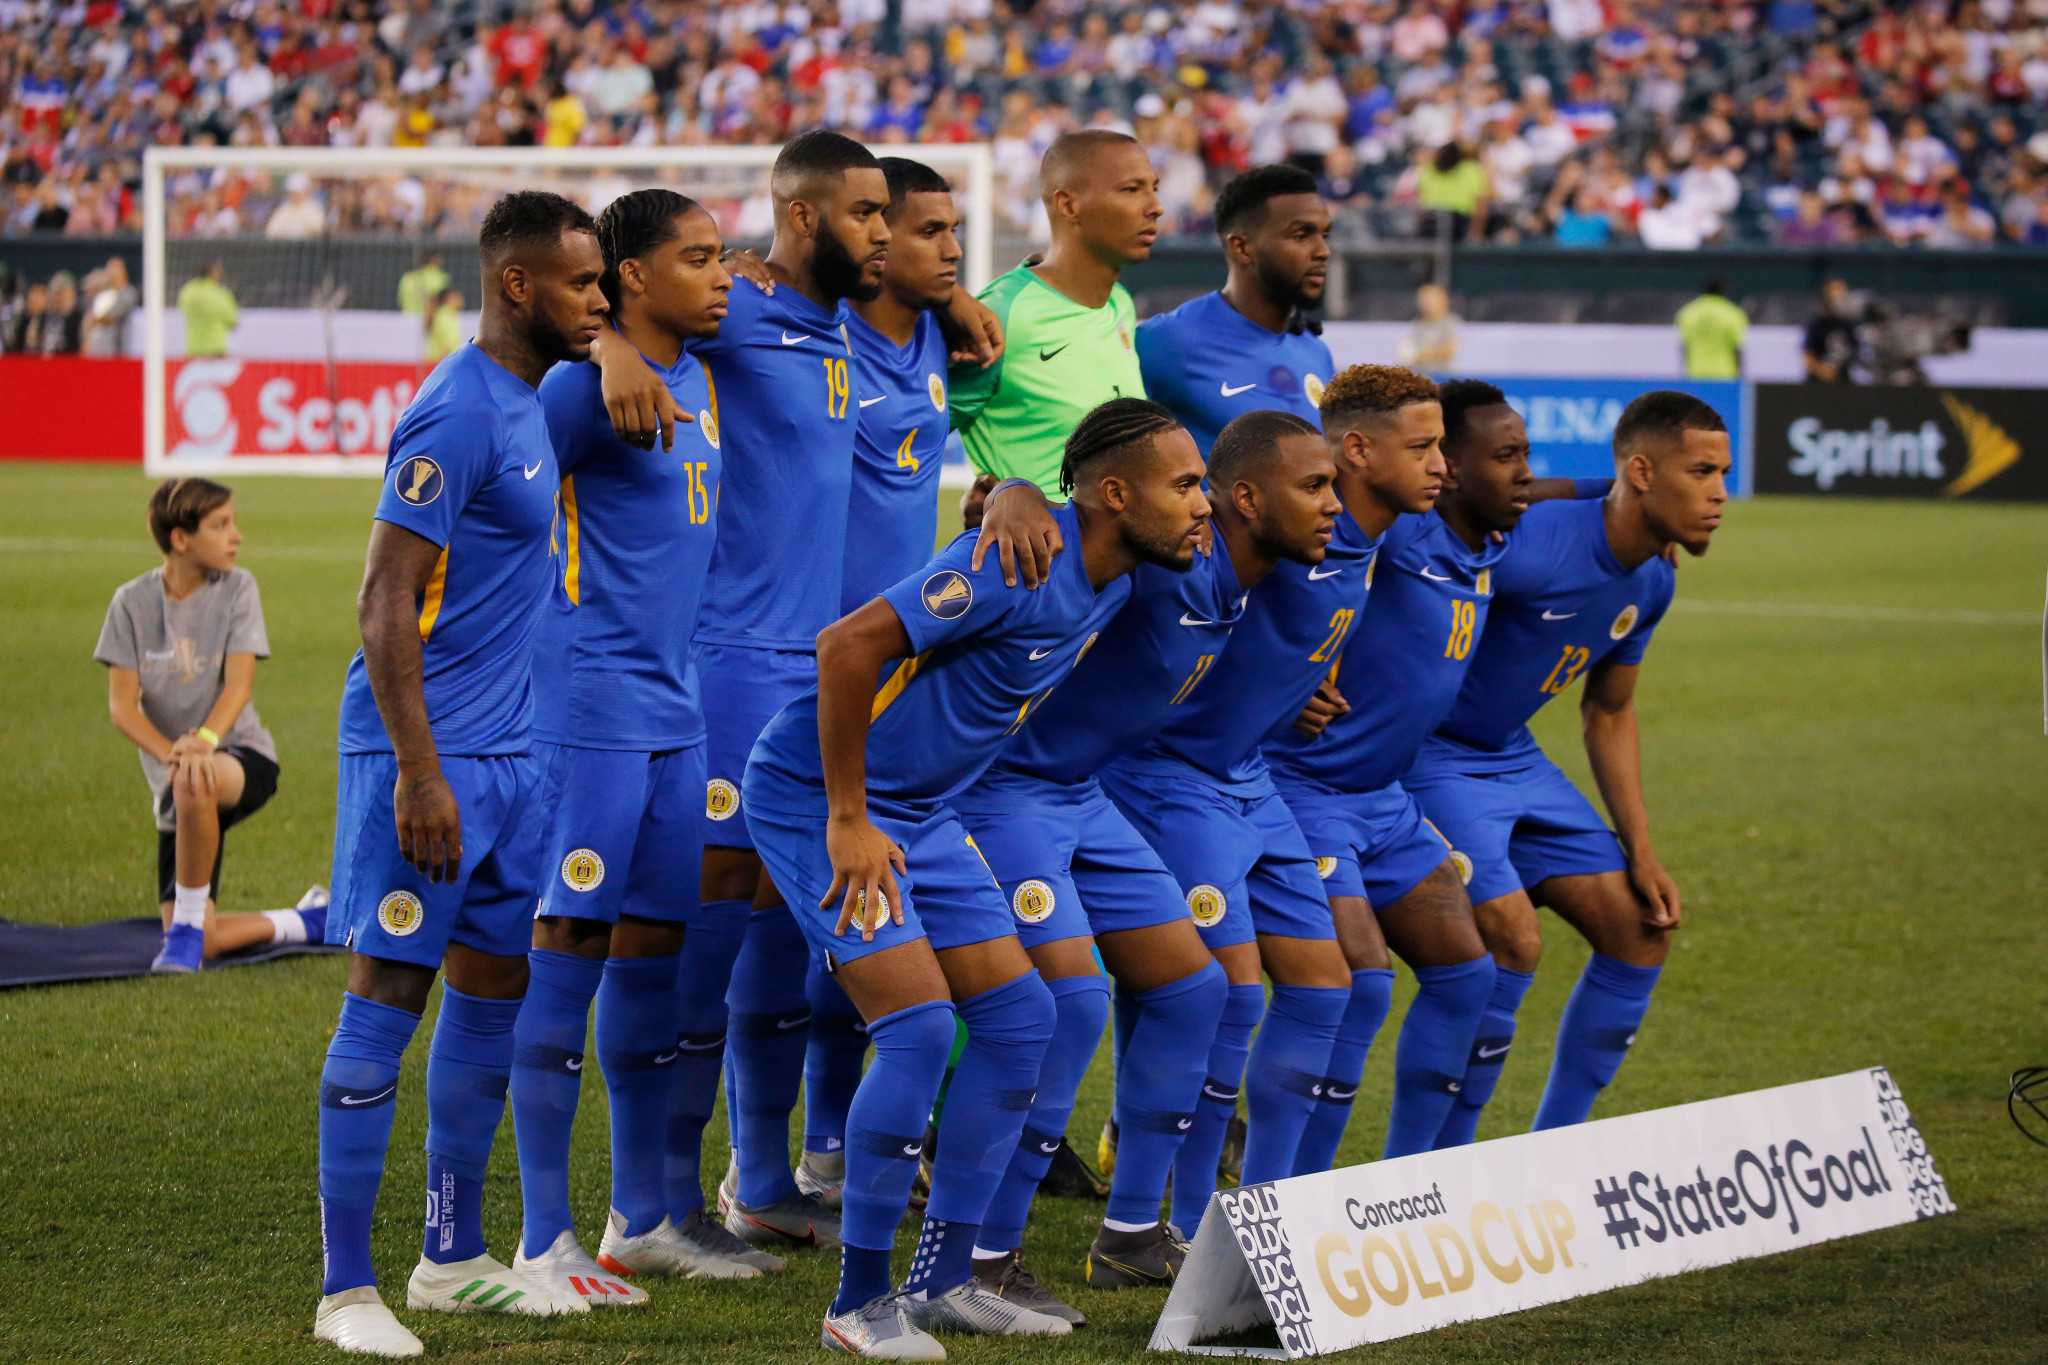 Curaçao has been forced to withdraw from the Gold Cup due to positive COVID-19 cases ©Getty Images